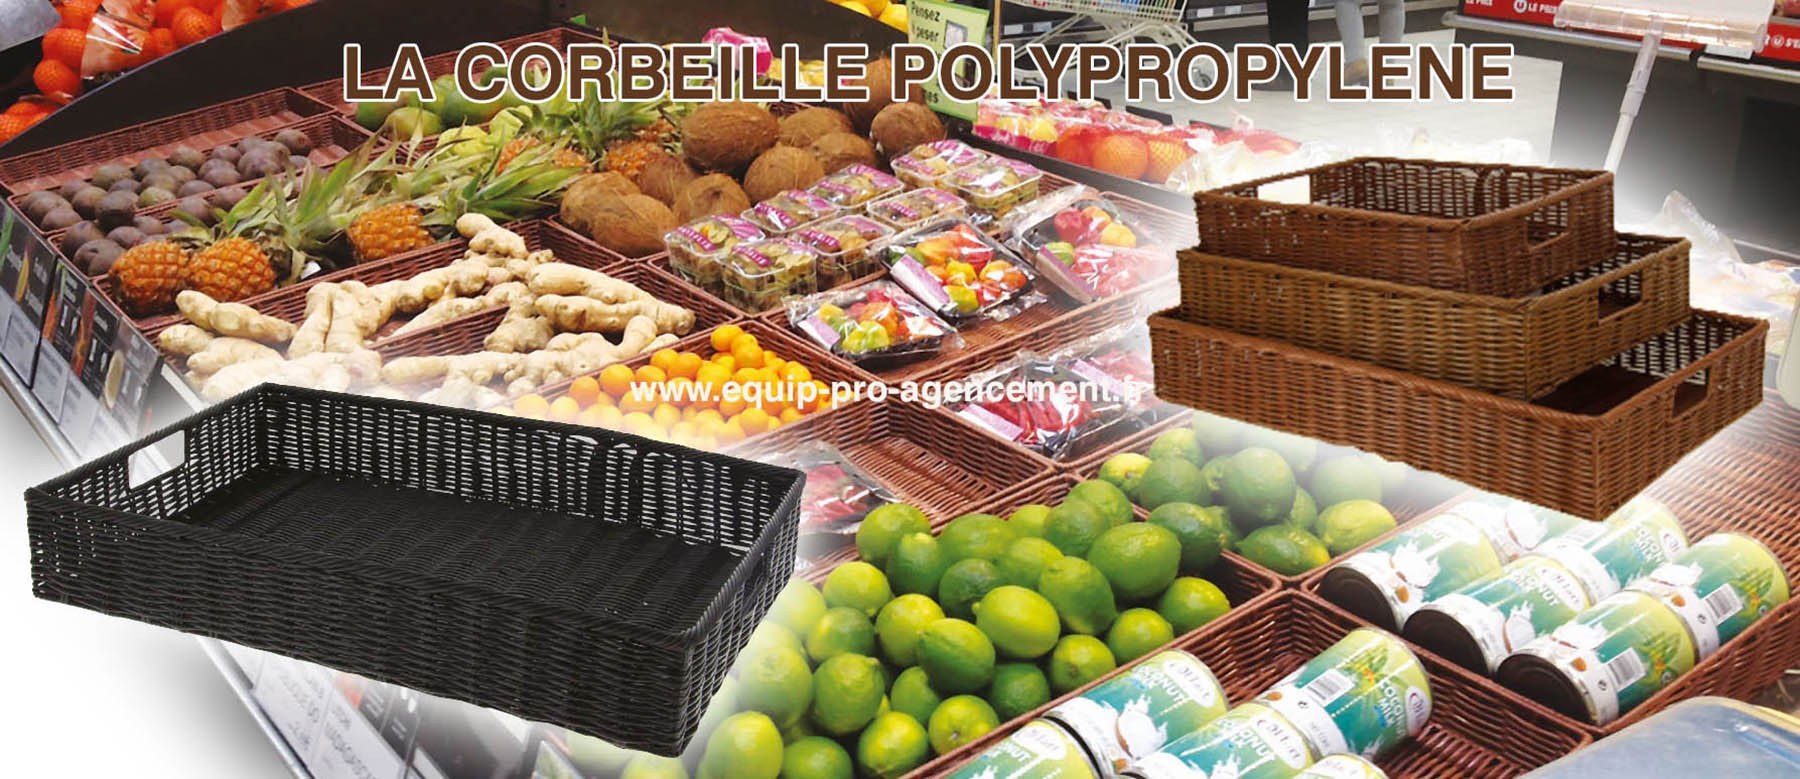 corbeille polypropylene theatralisation manne fruit legume